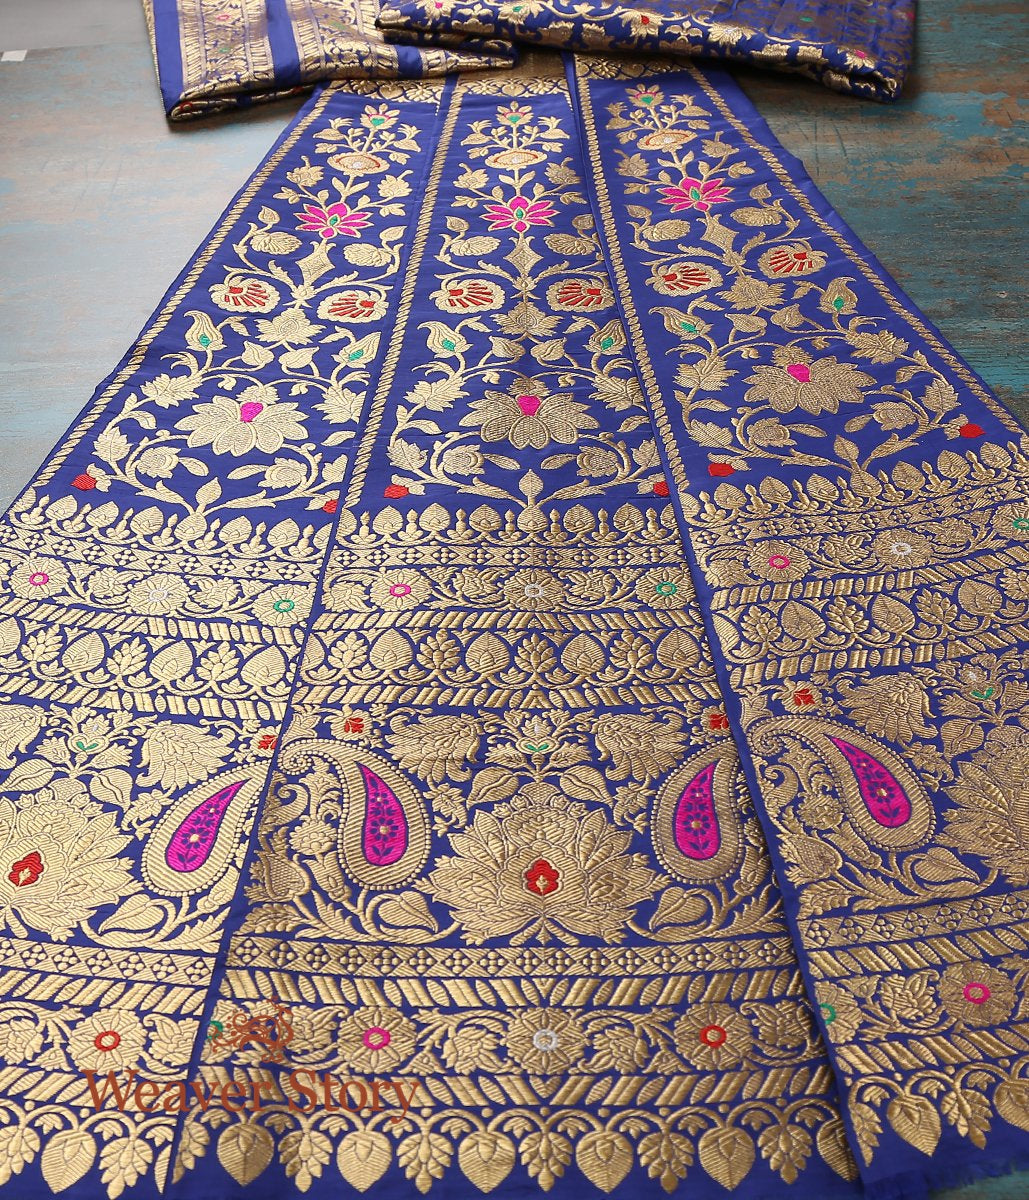 Handwoven Kadhwa Banarasi Lehenga in Blue with Meenakari